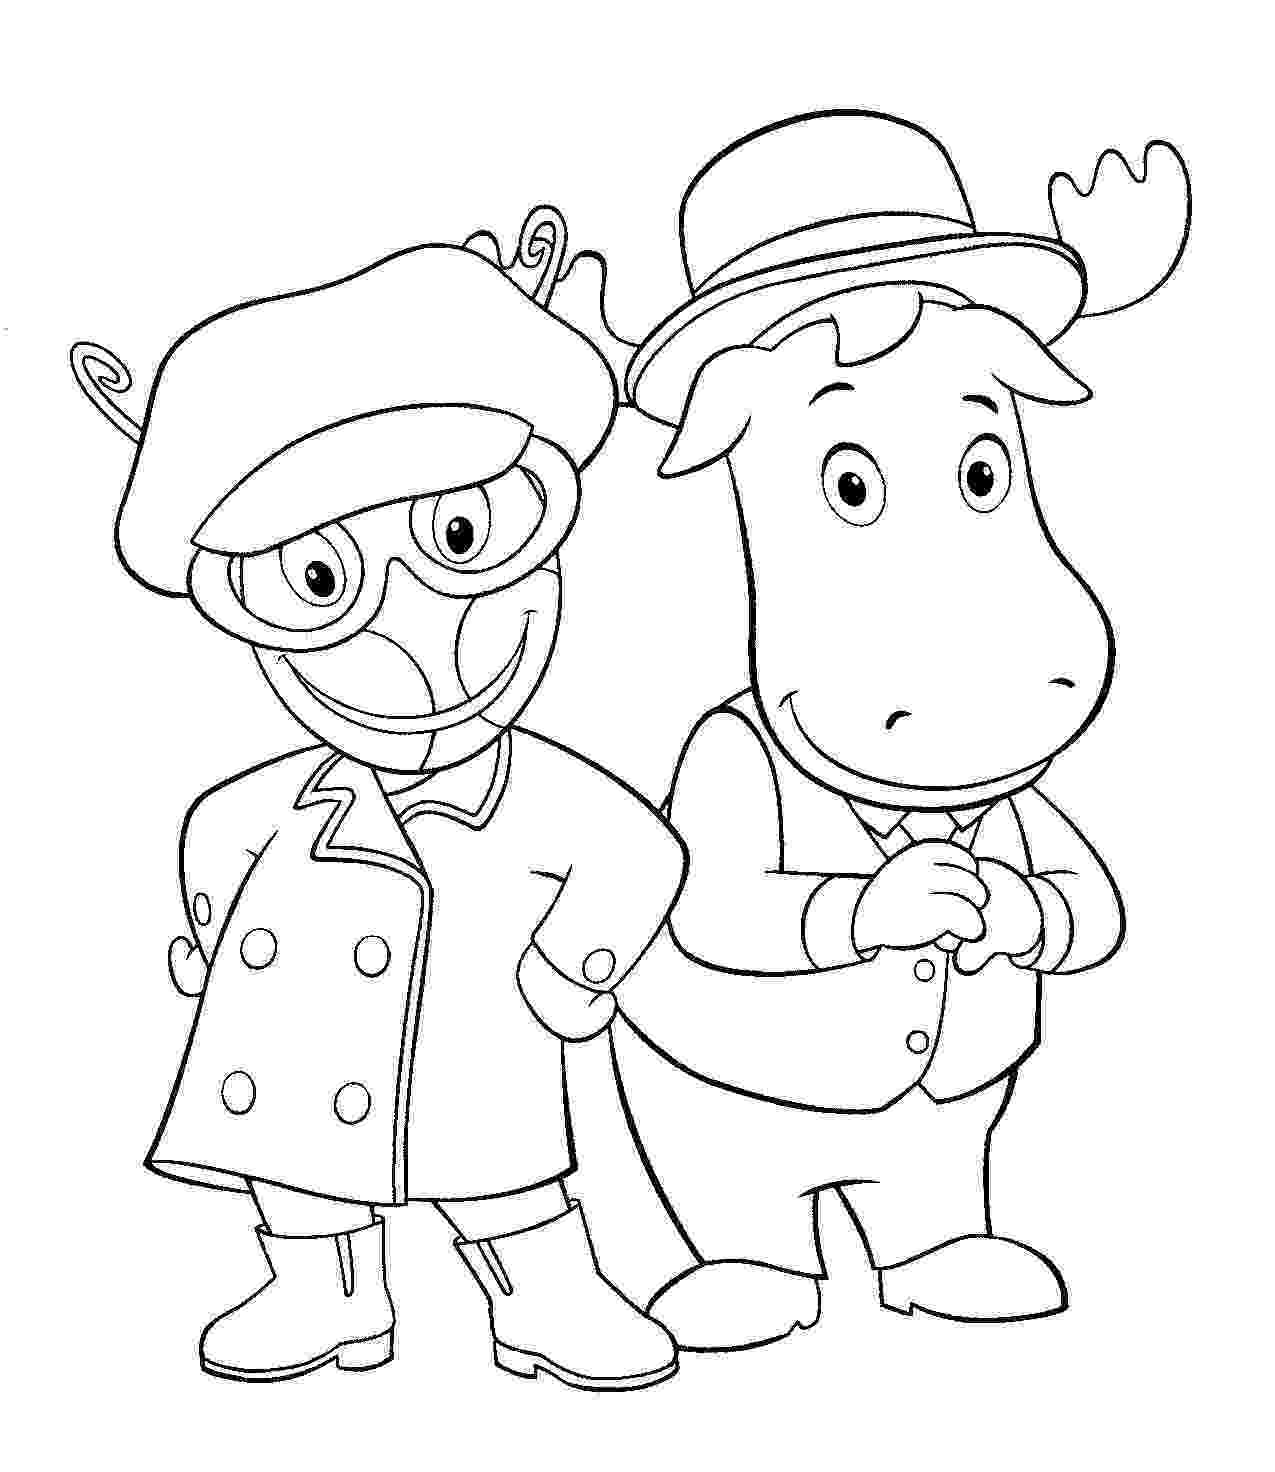 best colouring pages to print best friend coloring pages to download and print for free print colouring to pages best